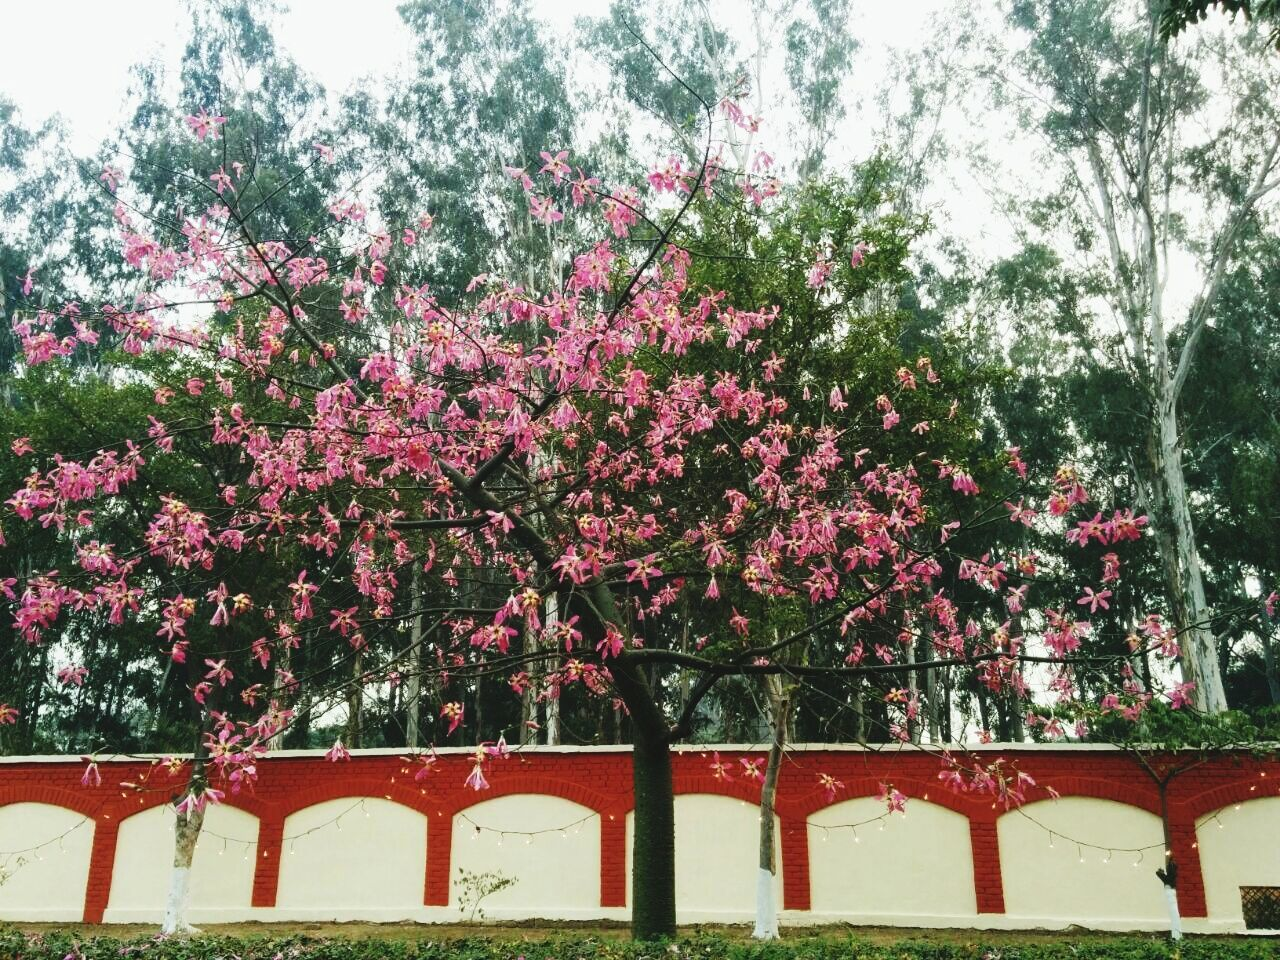 growth, red, tree, nature, outdoors, flower, no people, day